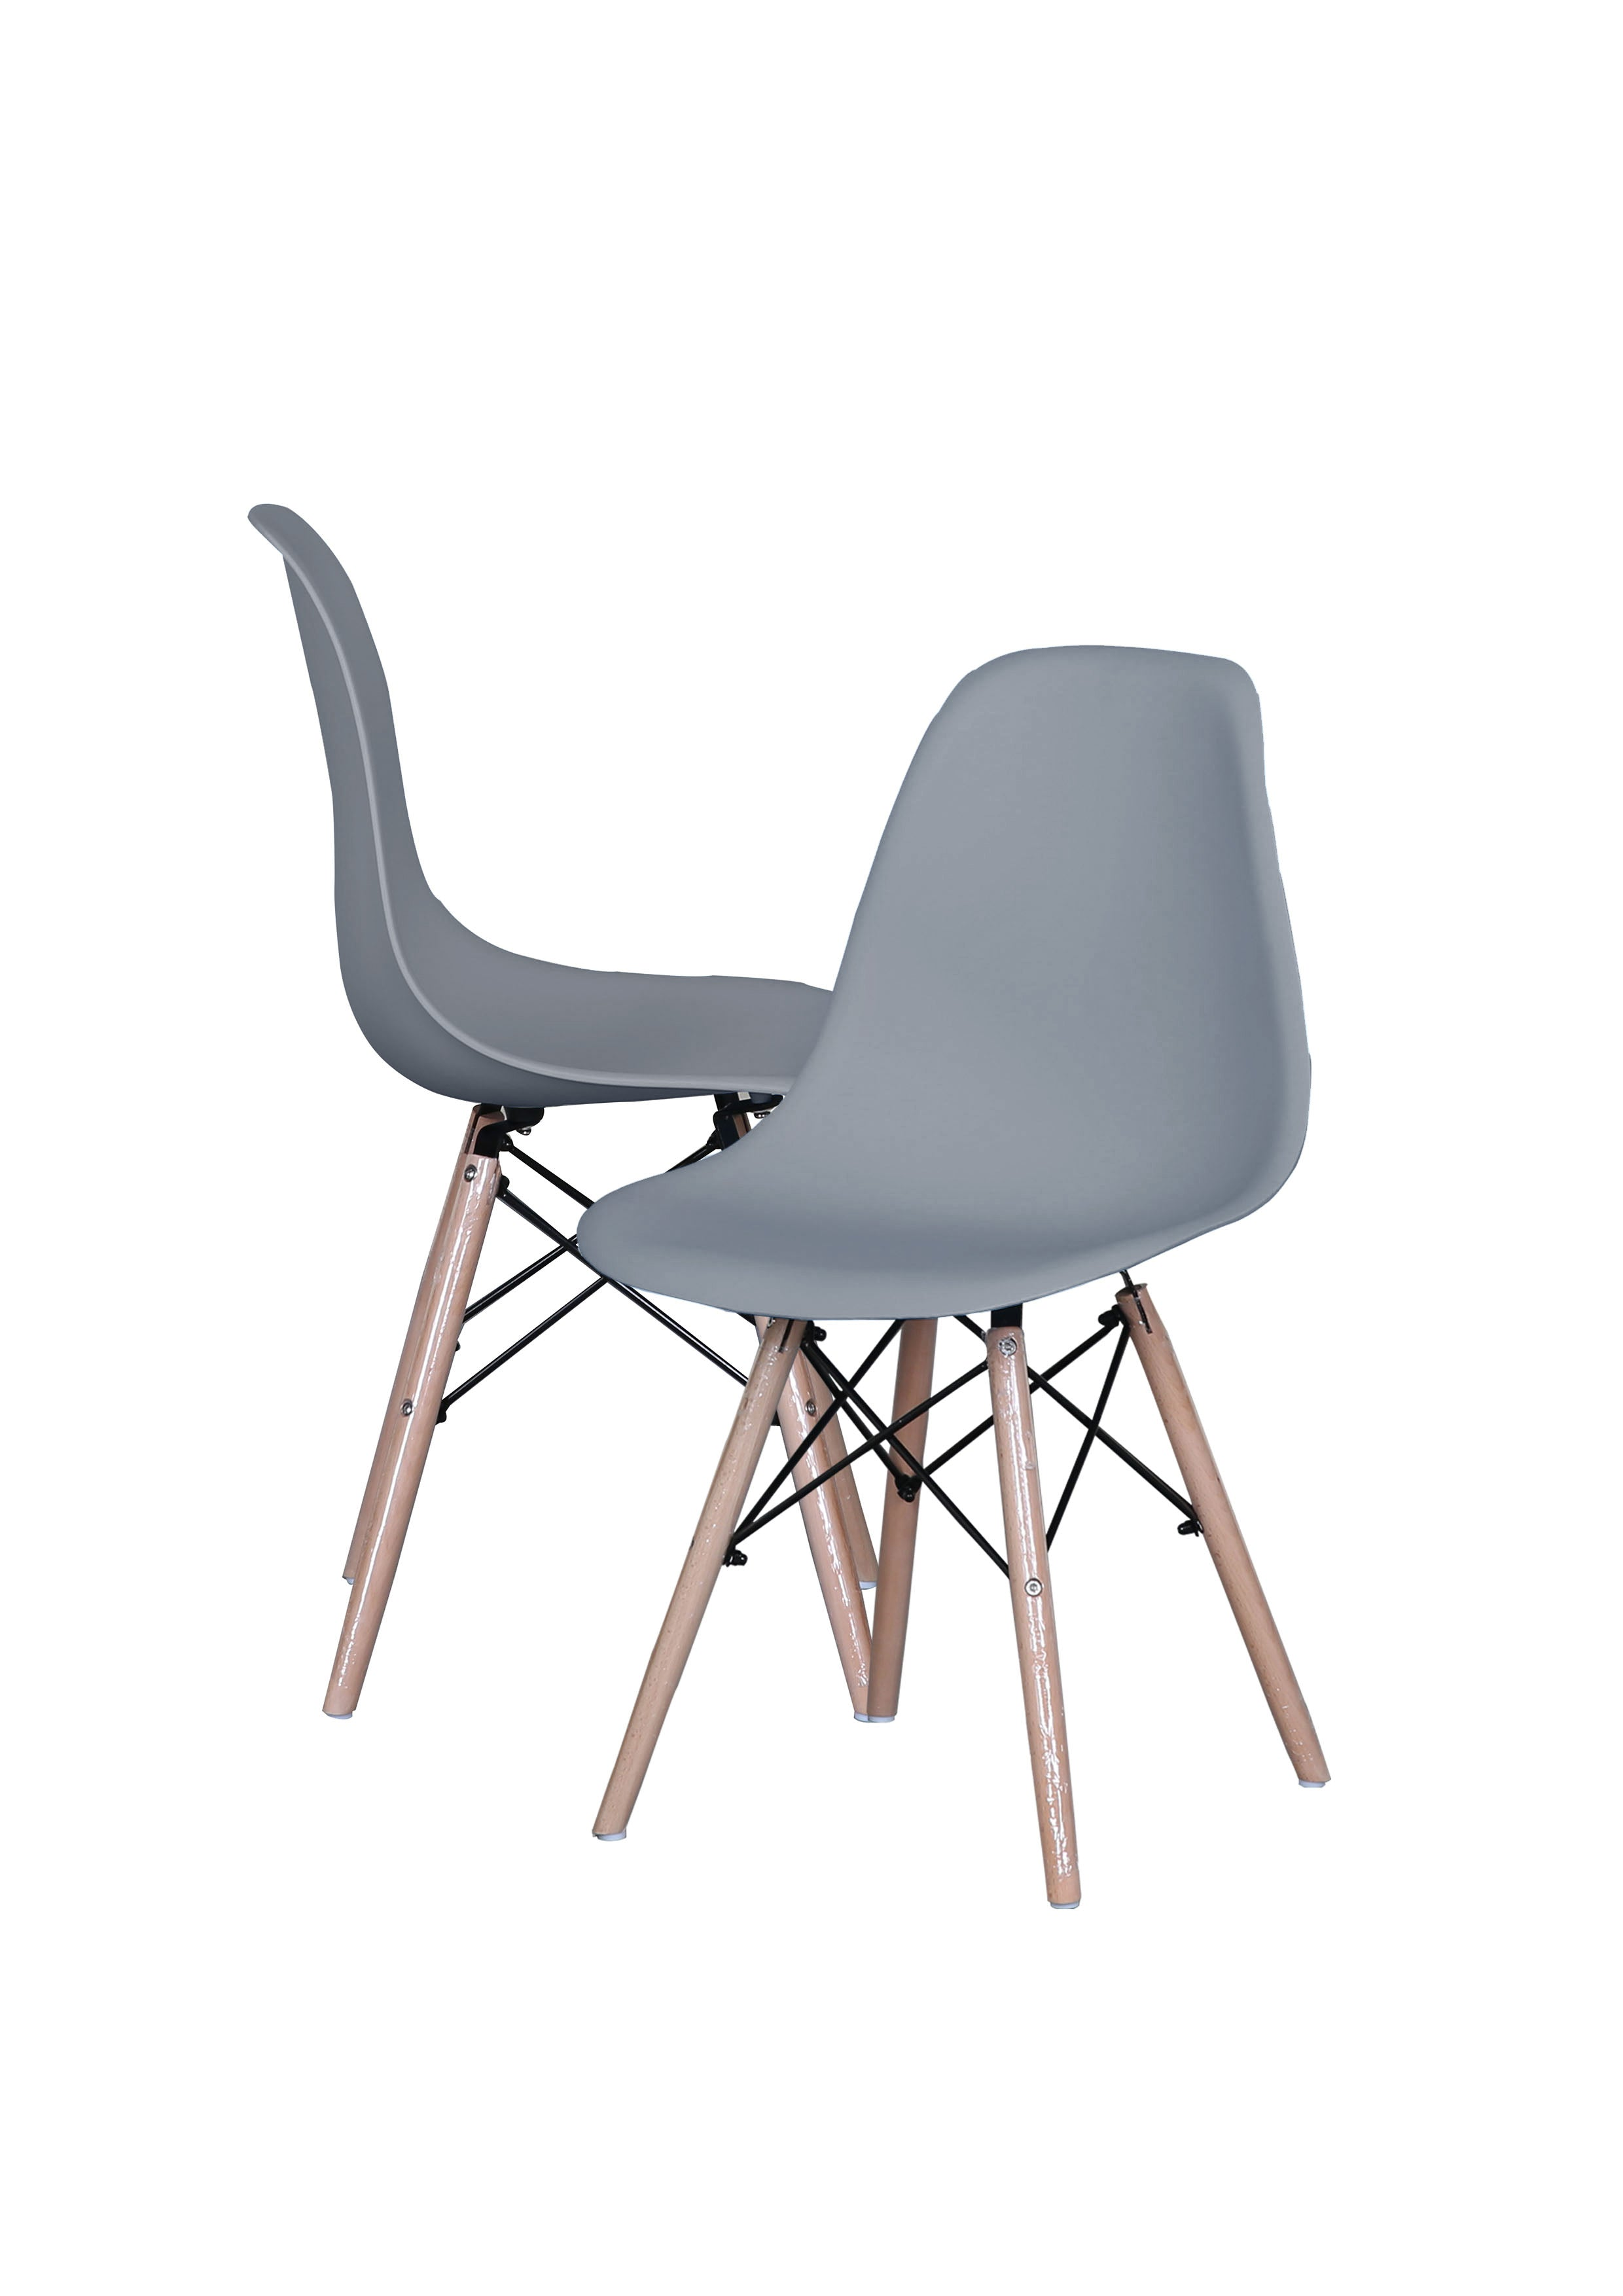 Ray Set of 2 Classic Modern Eames-Inspired Chairs  sc 1 st  Sofamania & Ray Set of 2 Modern Chairs | Sofamania.com